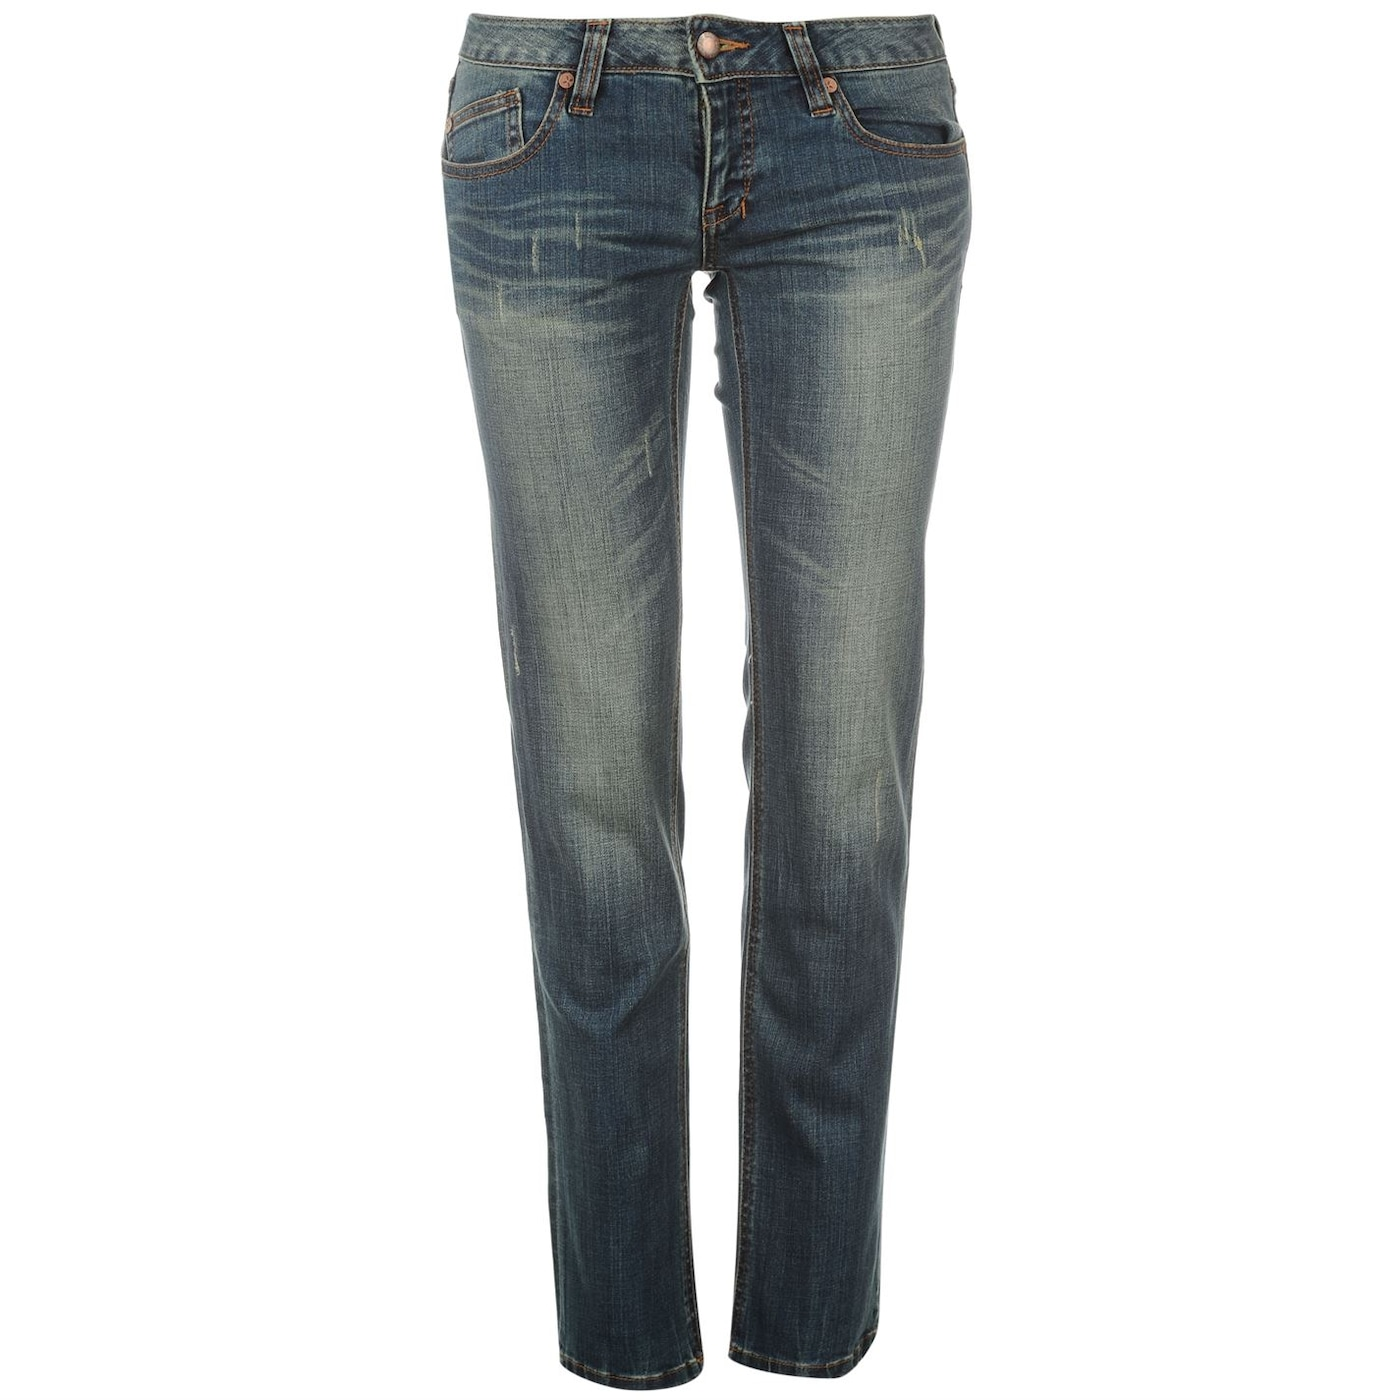 Lee Cooper Straight Leg Jeans Womens